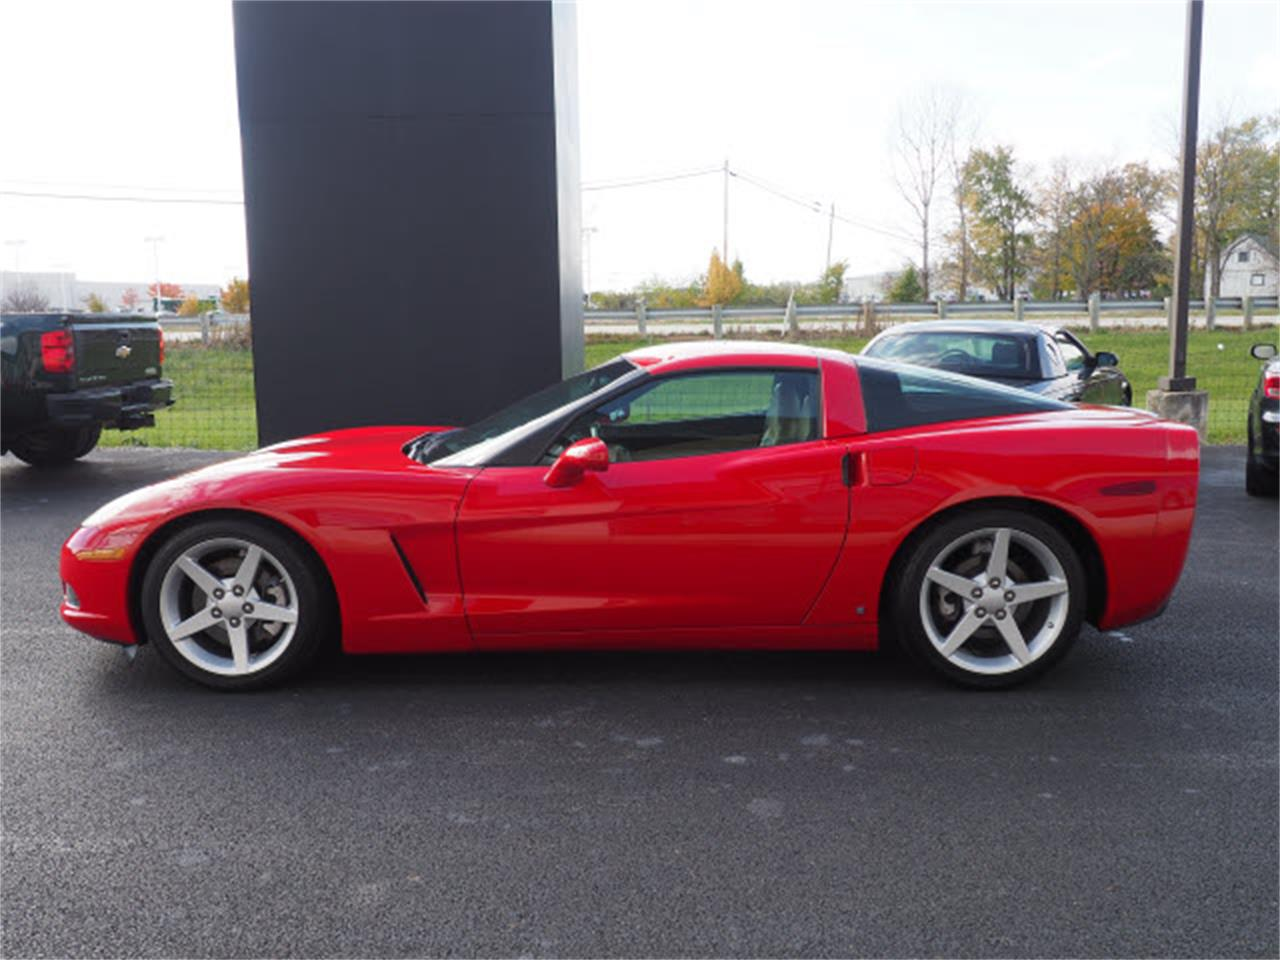 Large Picture of 2006 Corvette located in Ohio - $23,999.00 Offered by Nelson Automotive, Ltd. - MB5M